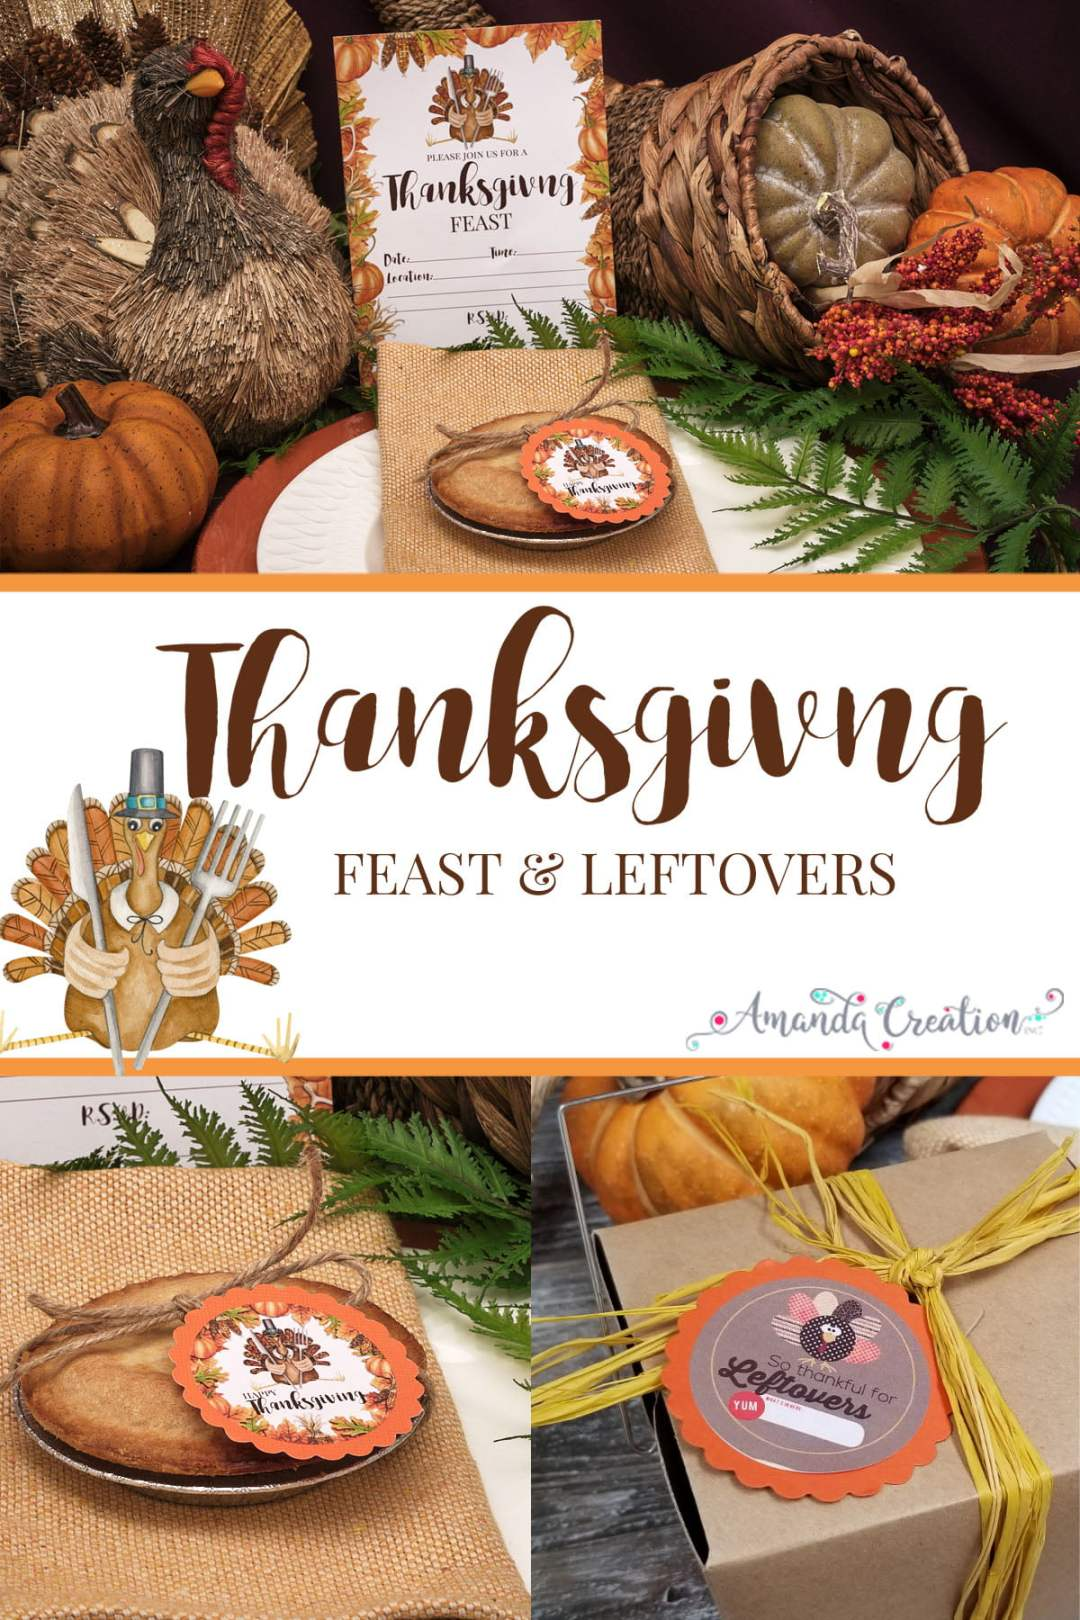 Thanksgiving Feast & Leftovers